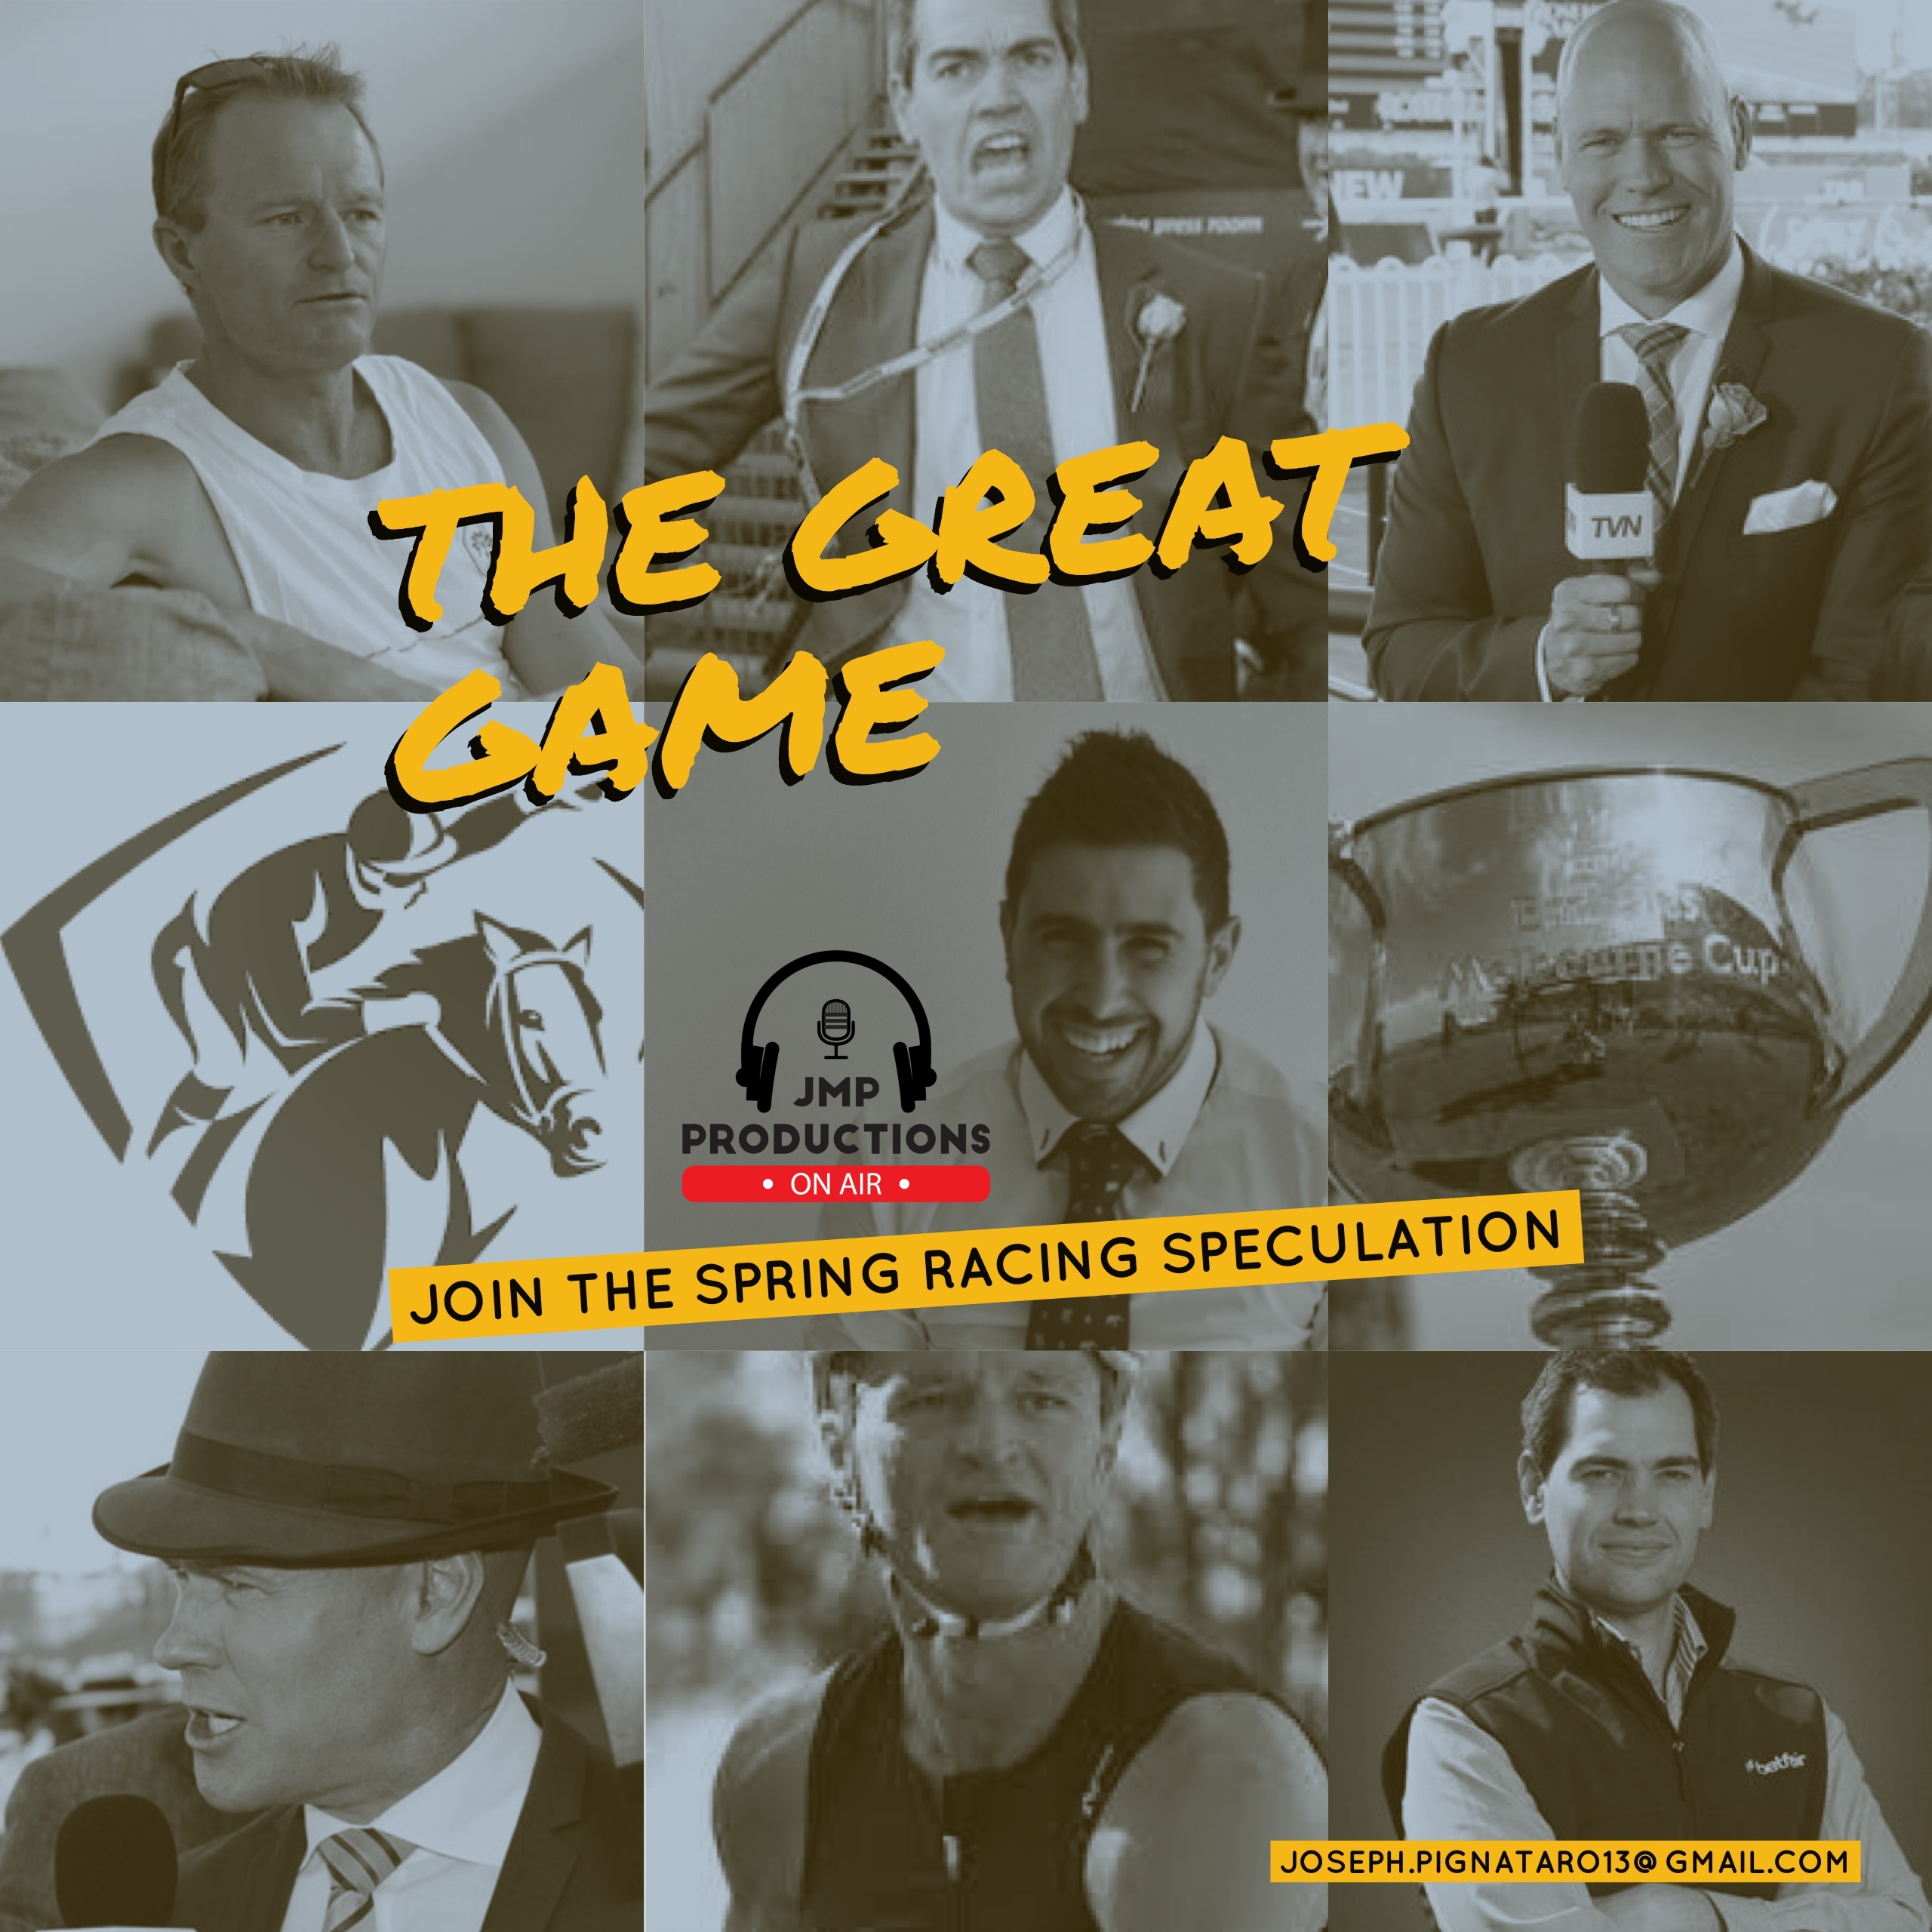 Episode 25 - The Great Game (June 13, 2019)